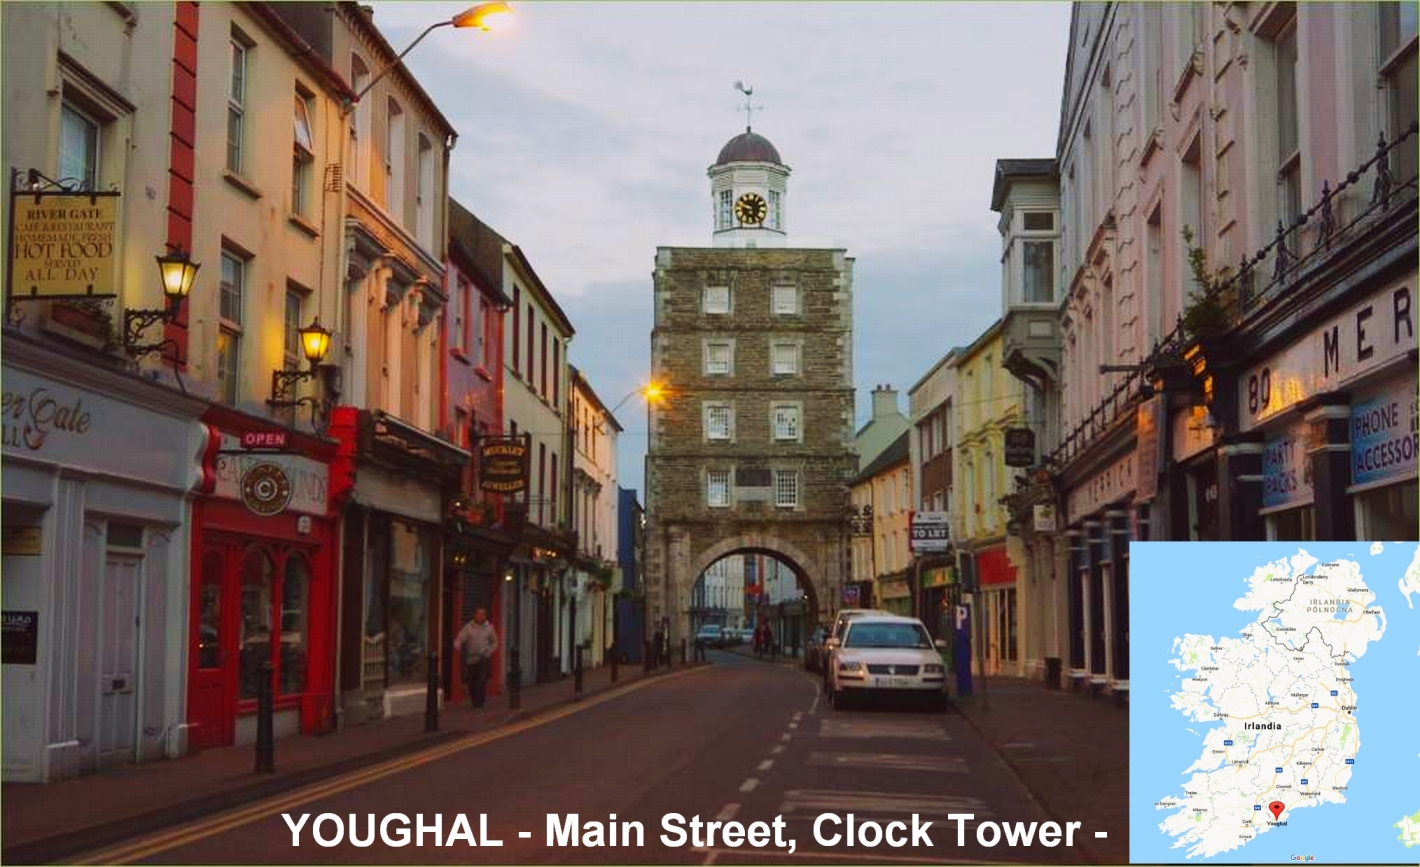 Youghal Main Street Clock Tower